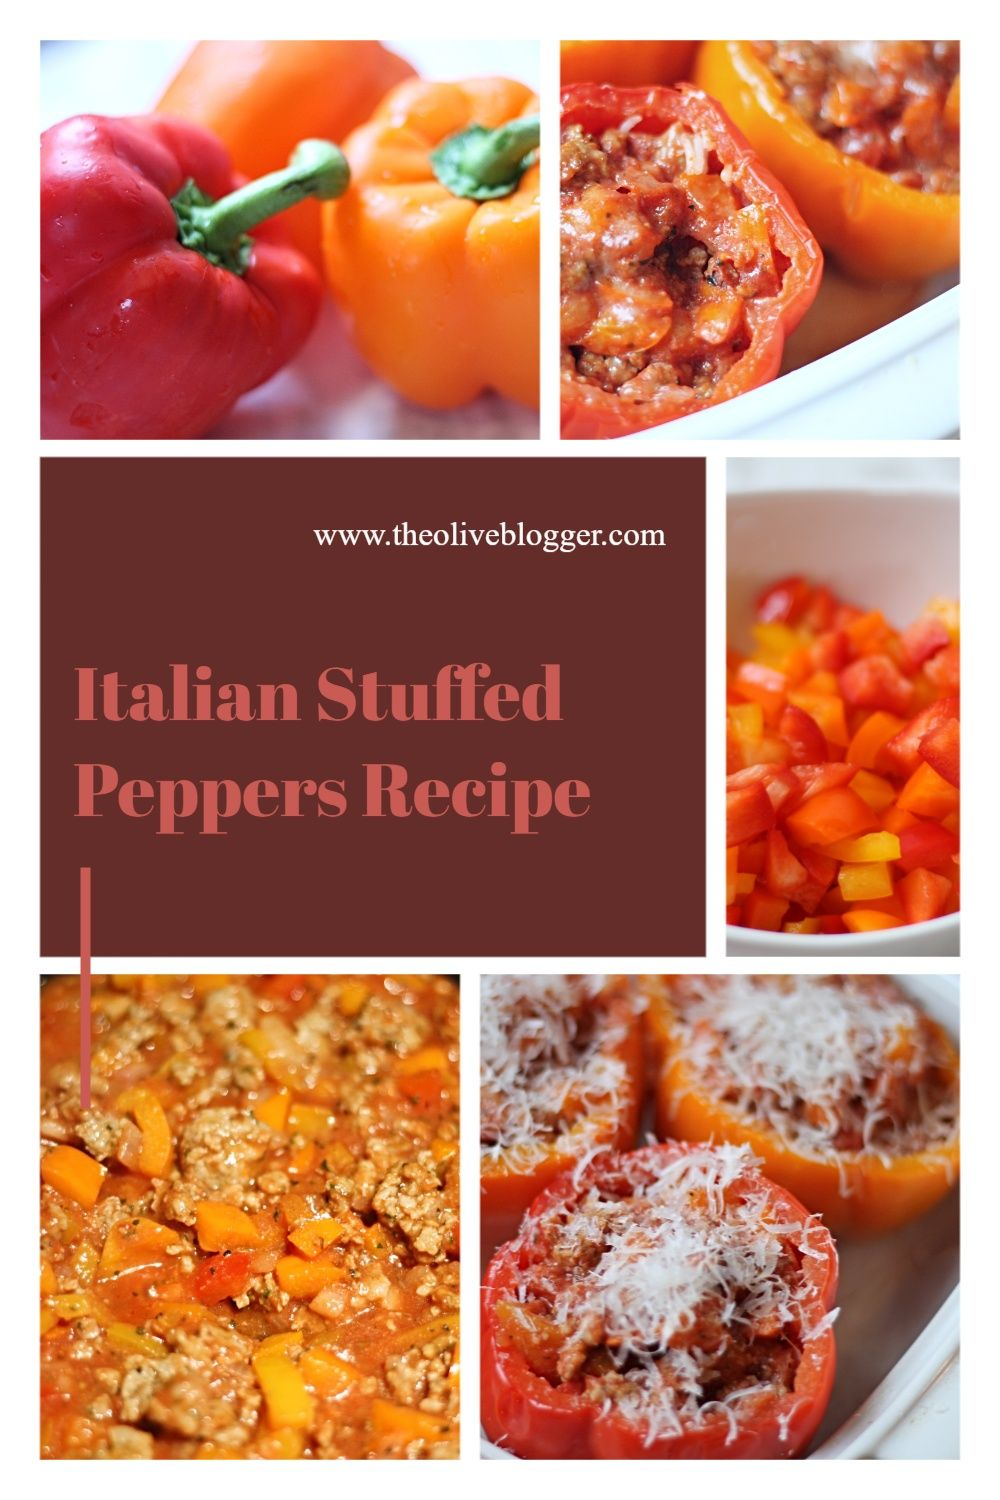 Italian Stuffed Peppers Recipe The Olive Blogger Recipe In 2020 Comfort Food Recipes Dinners Stuffed Peppers Italian Stuffed Peppers